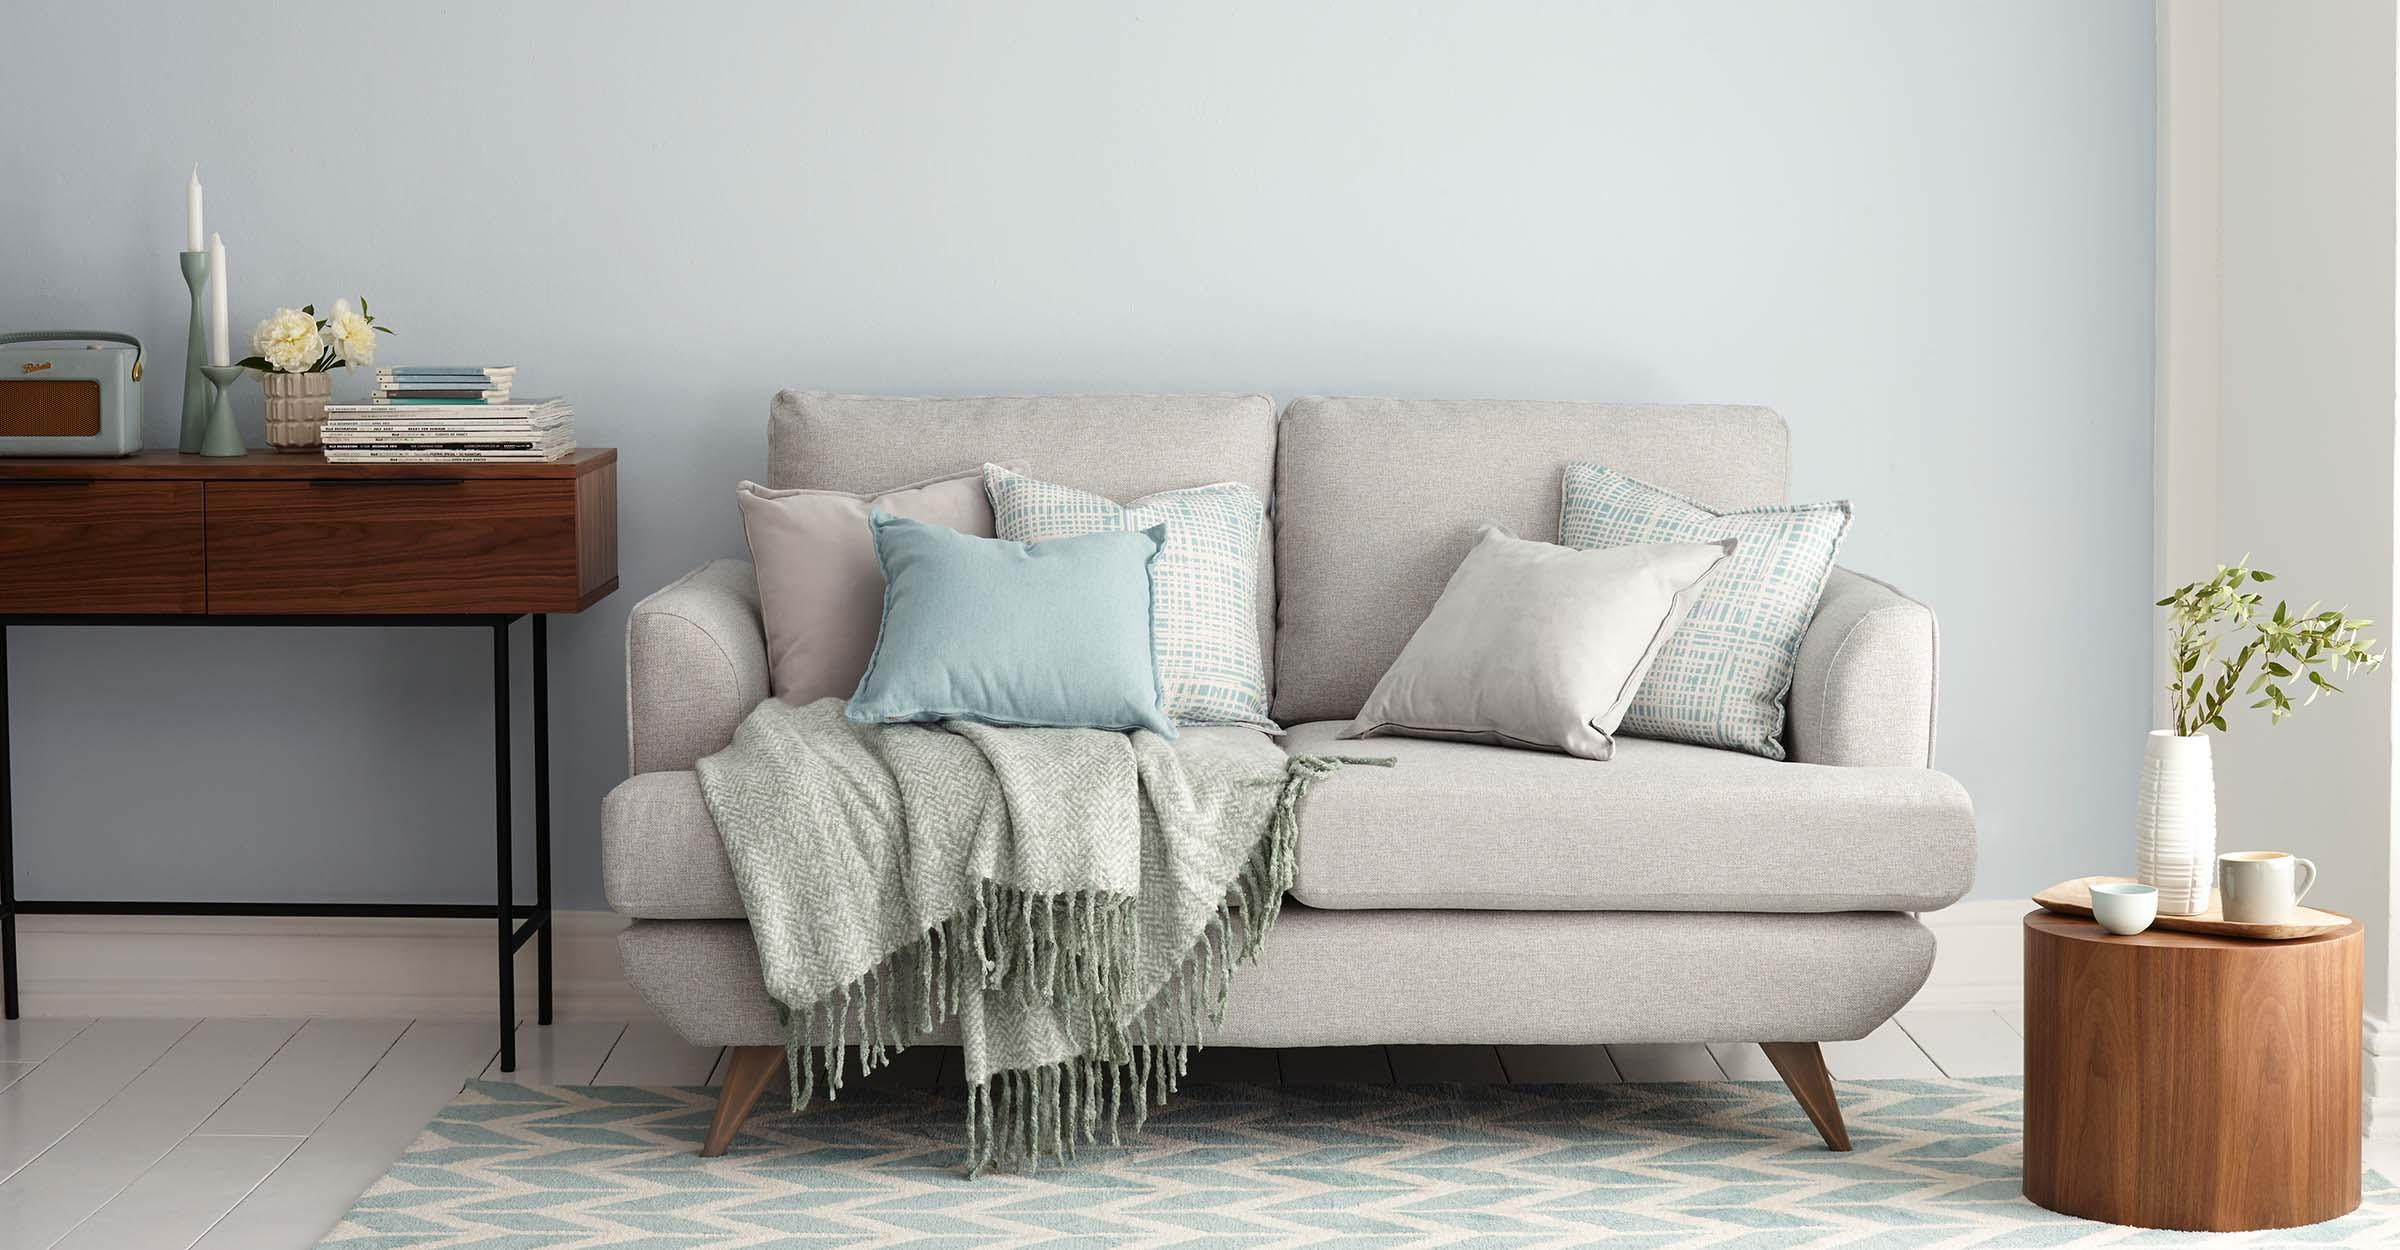 Groovy 2 Seater Sofas Small Sofas Dfs Caraccident5 Cool Chair Designs And Ideas Caraccident5Info